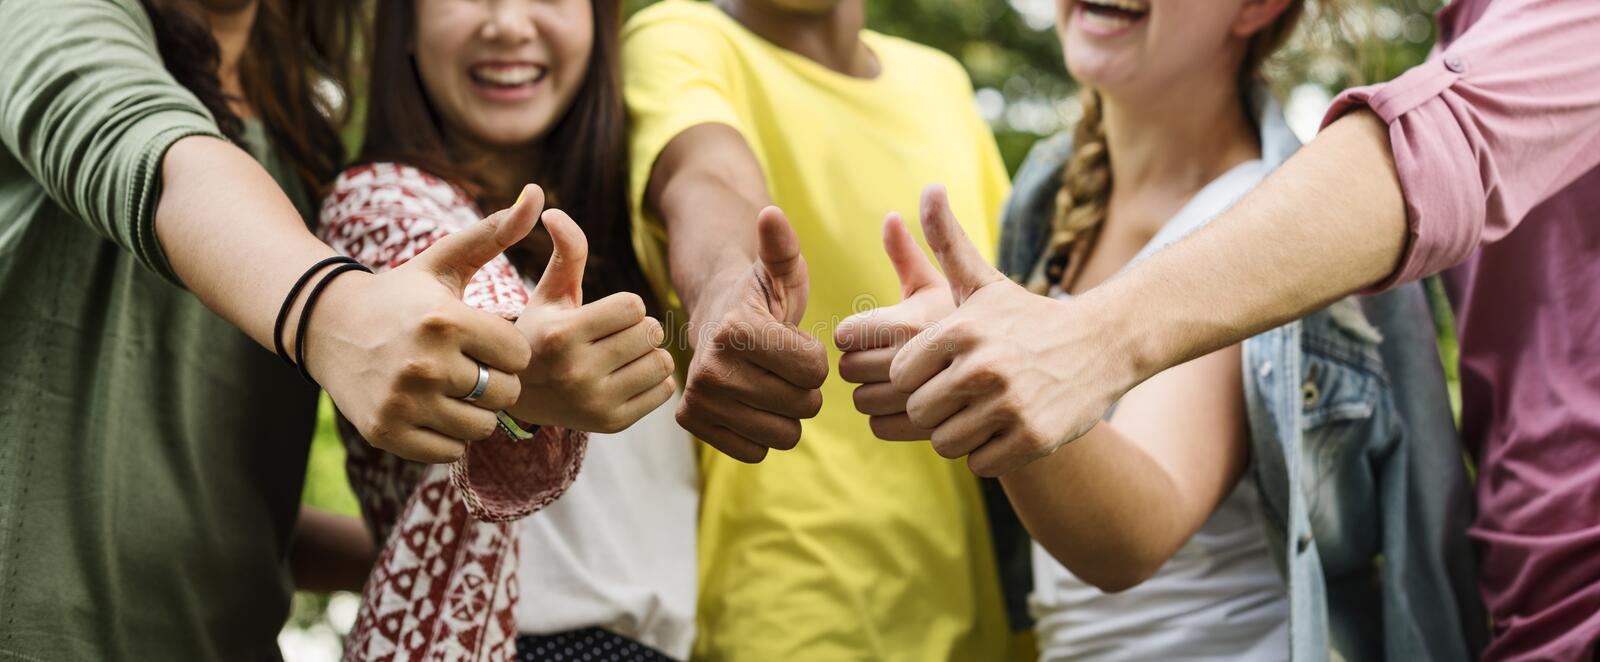 Diverse Group Young People Thumb Up Concept stock photo